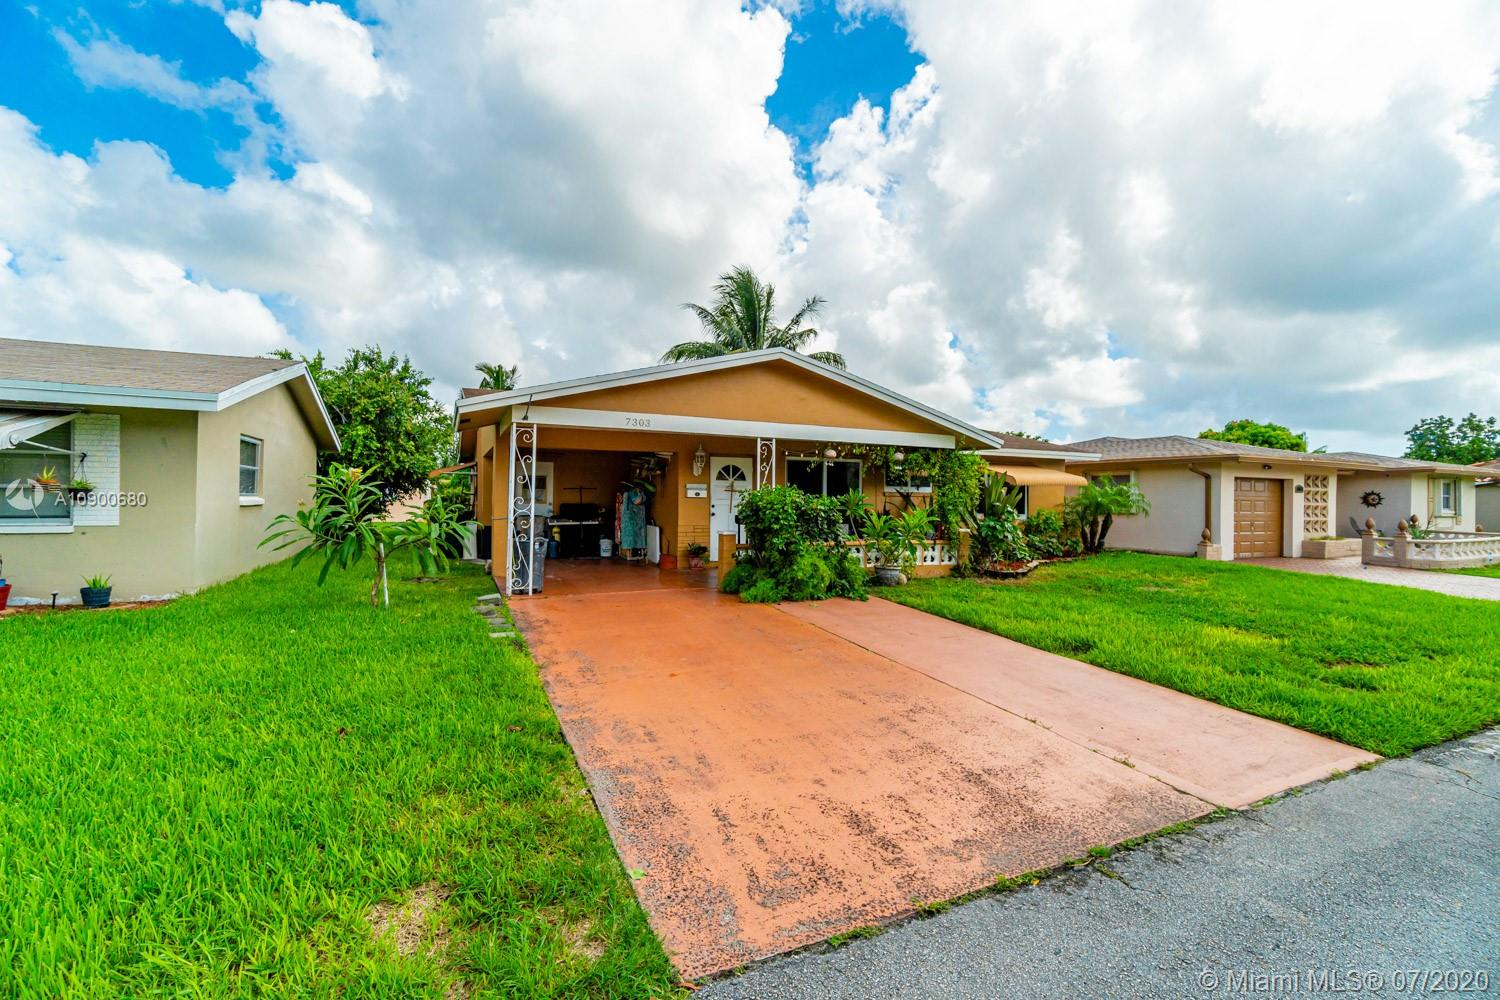 Charming 2/2 in the all ages section of the Mainlands! Property features laminate wood floors, redone kitchen (granite countertops, wood cabinets, stainless steel appliances), updated baths, hurricane impact windows and so much more. Make this your home today!